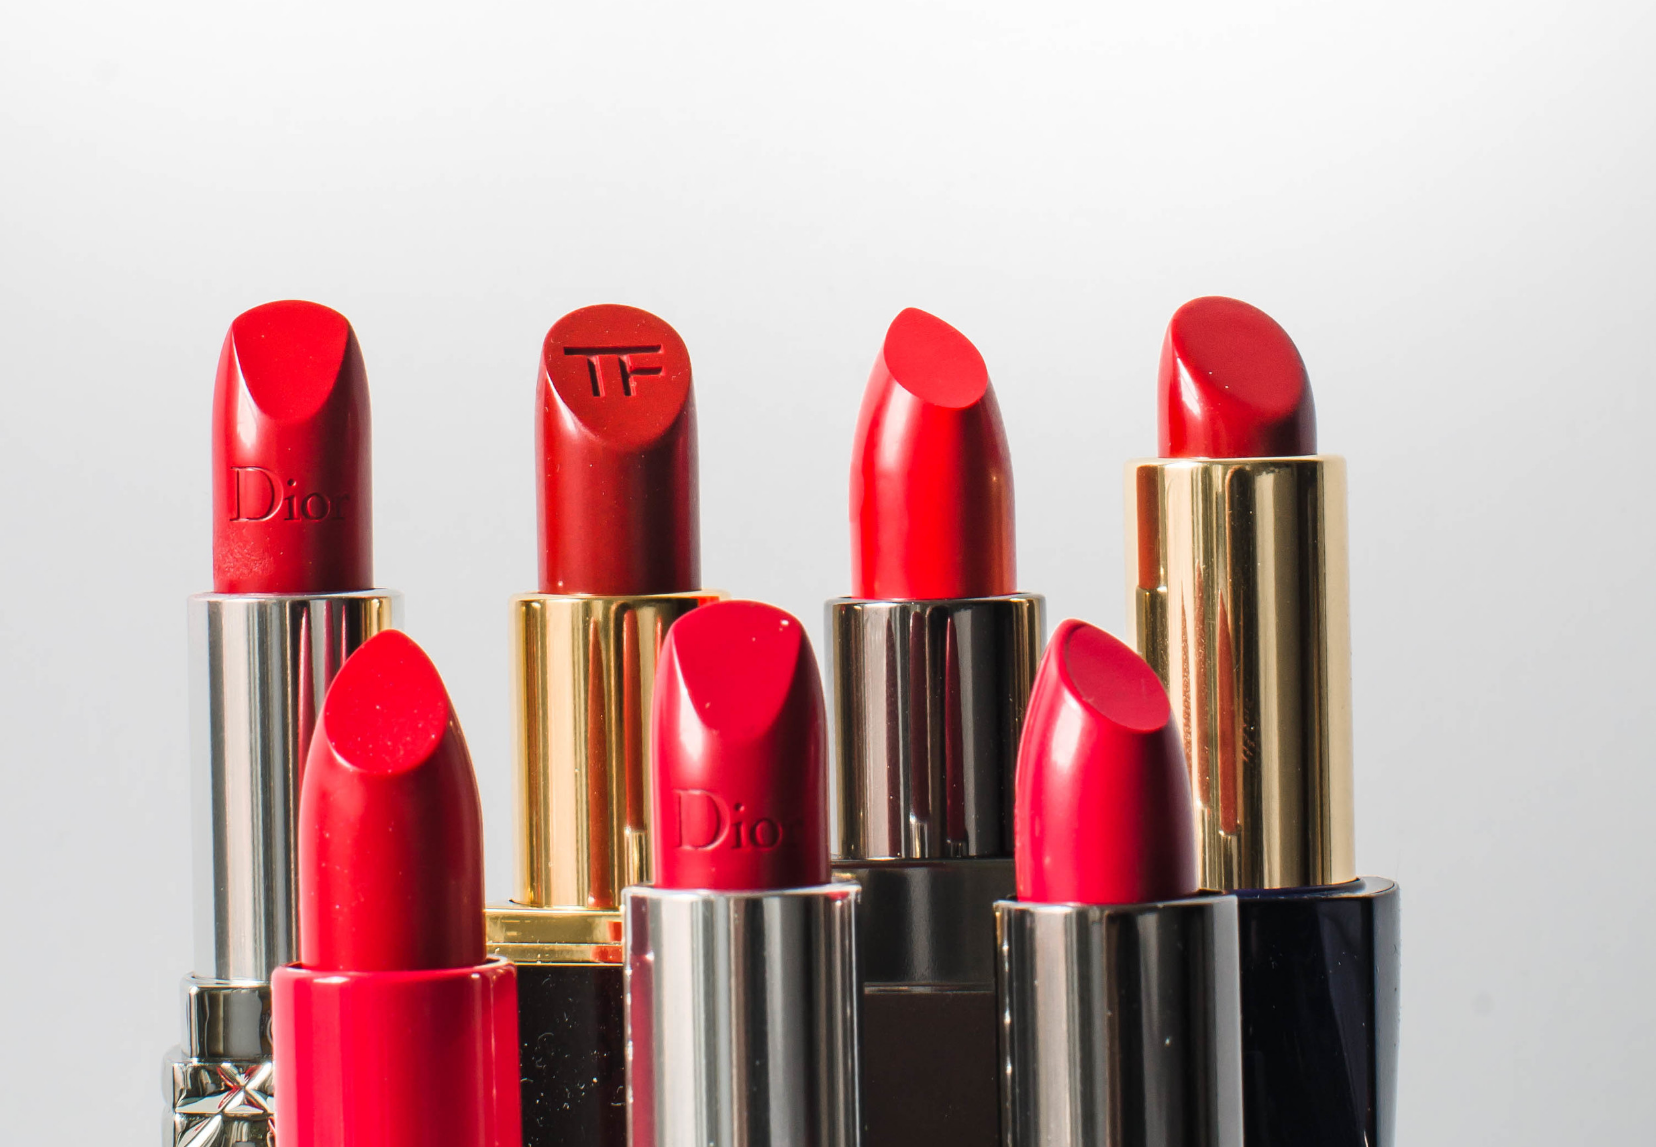 ROSE & IVY Journal A Guide to Red Lipsticks